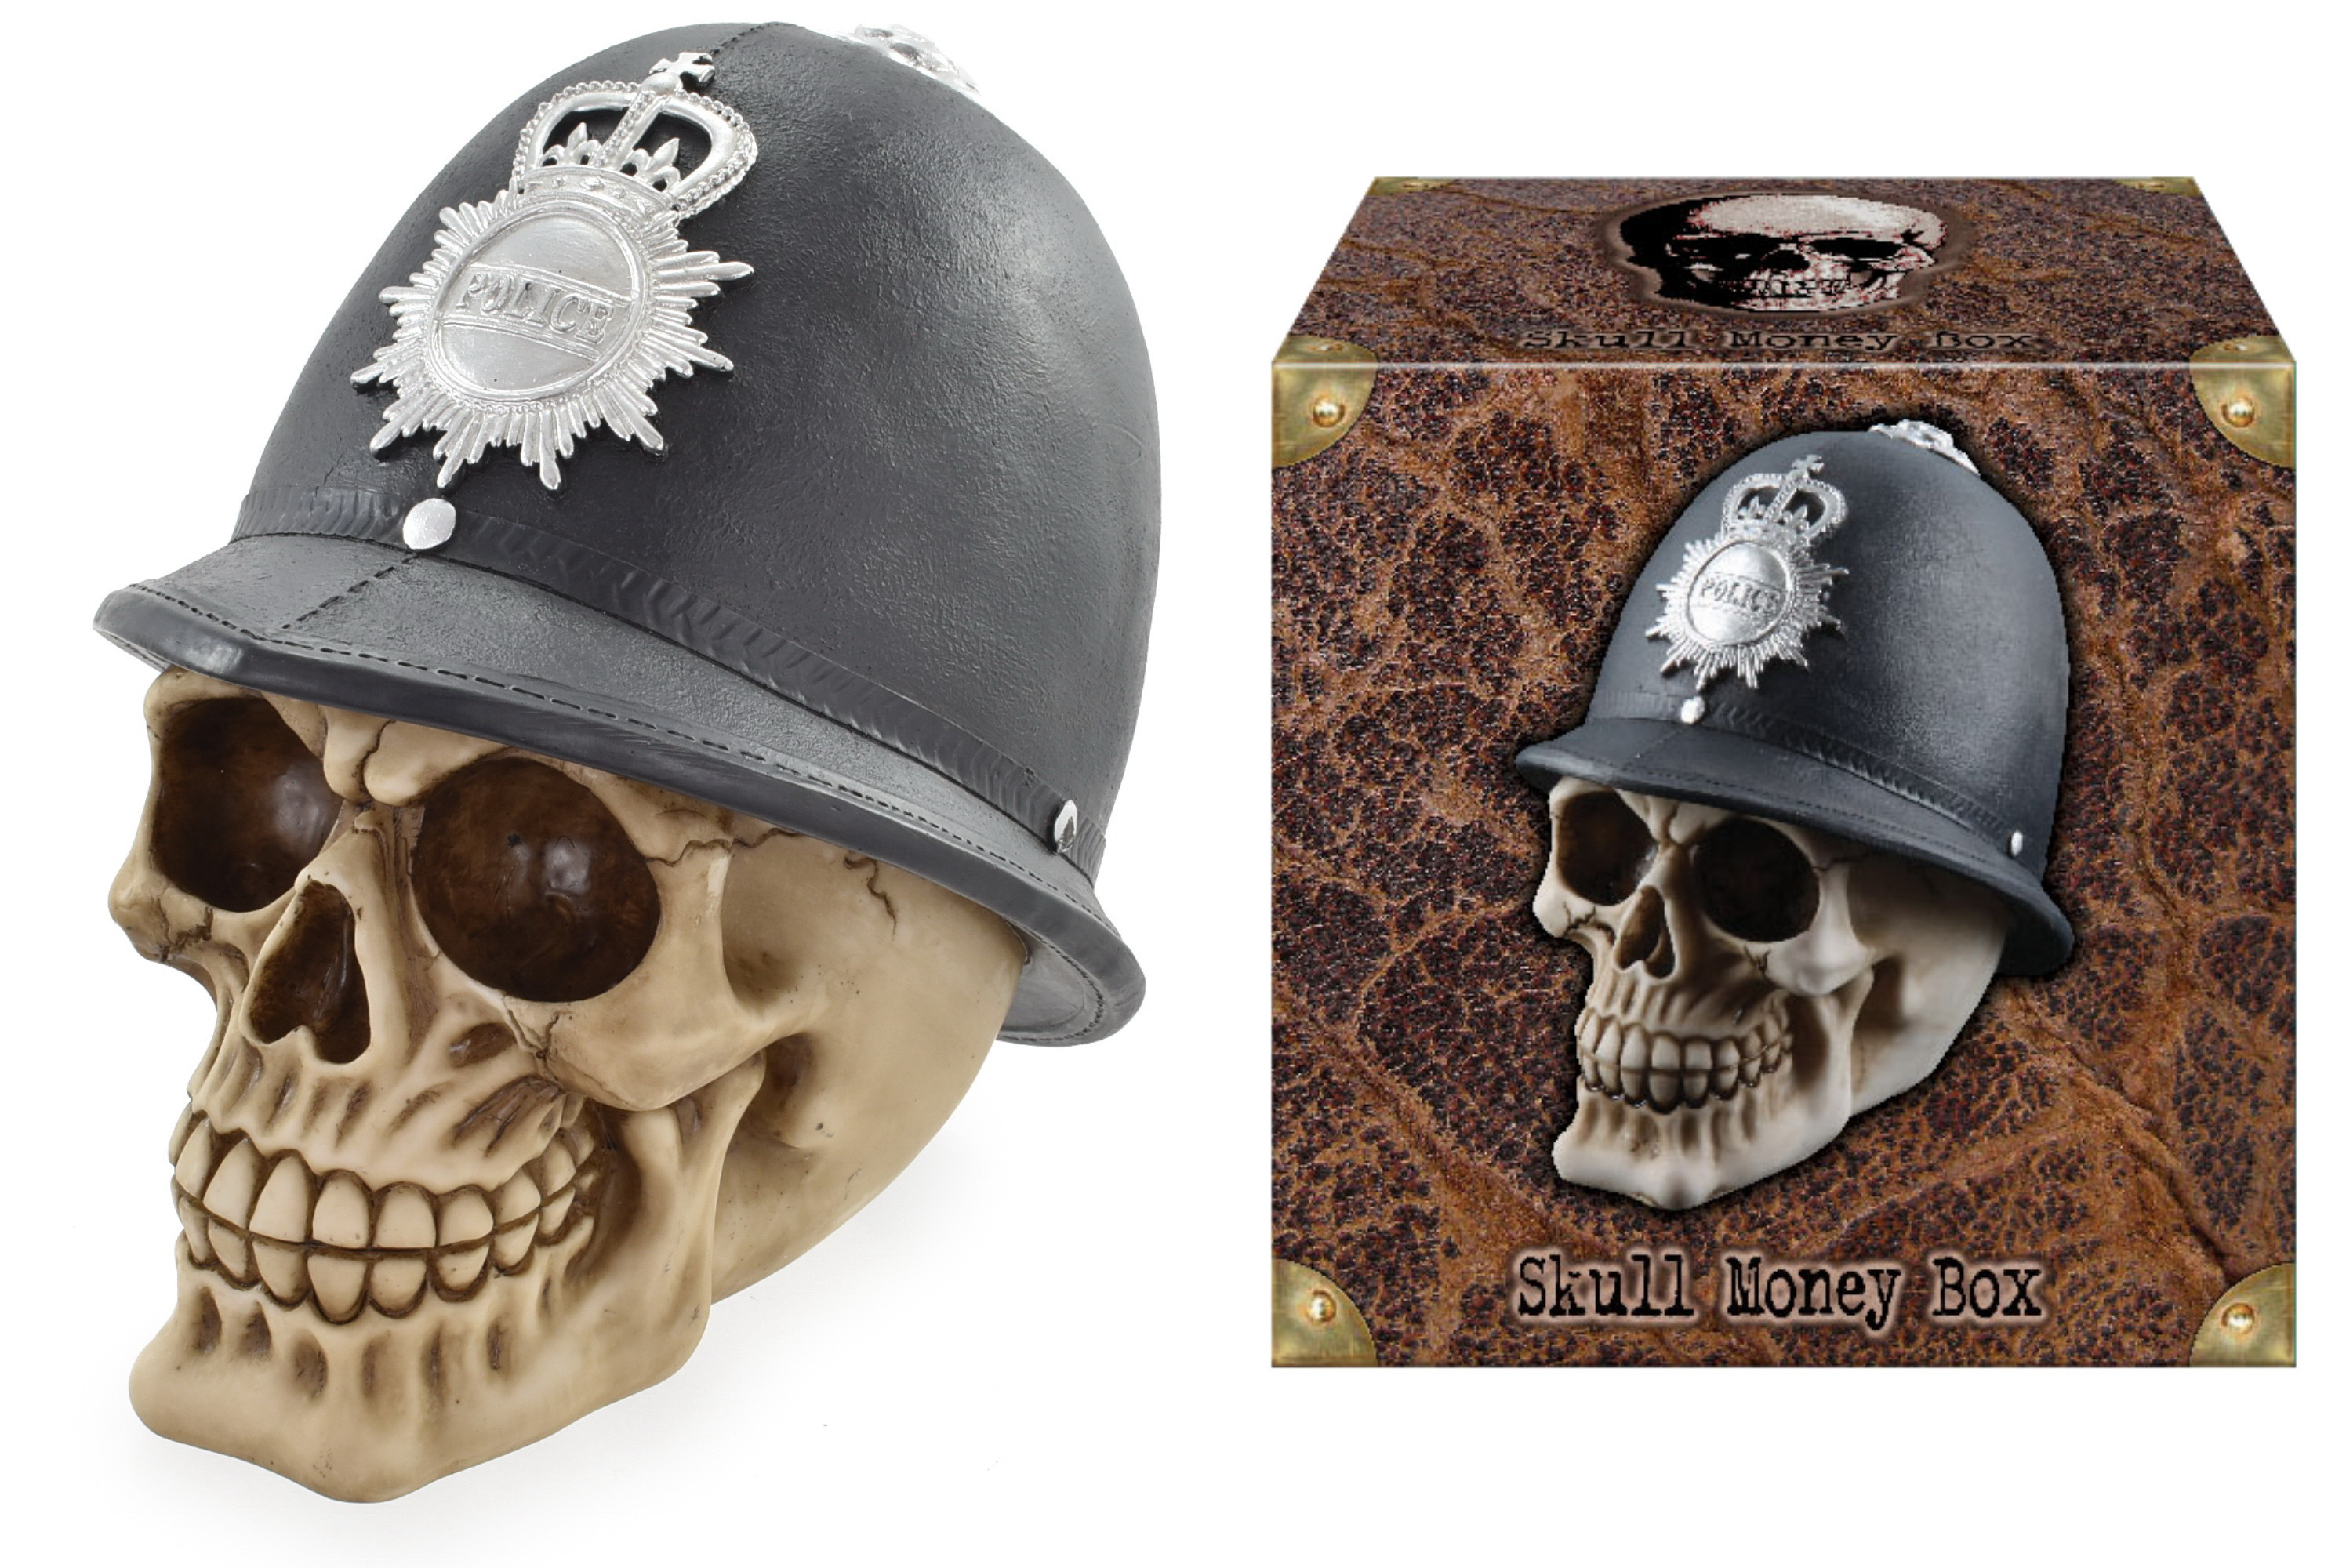 Police Skull Money Box